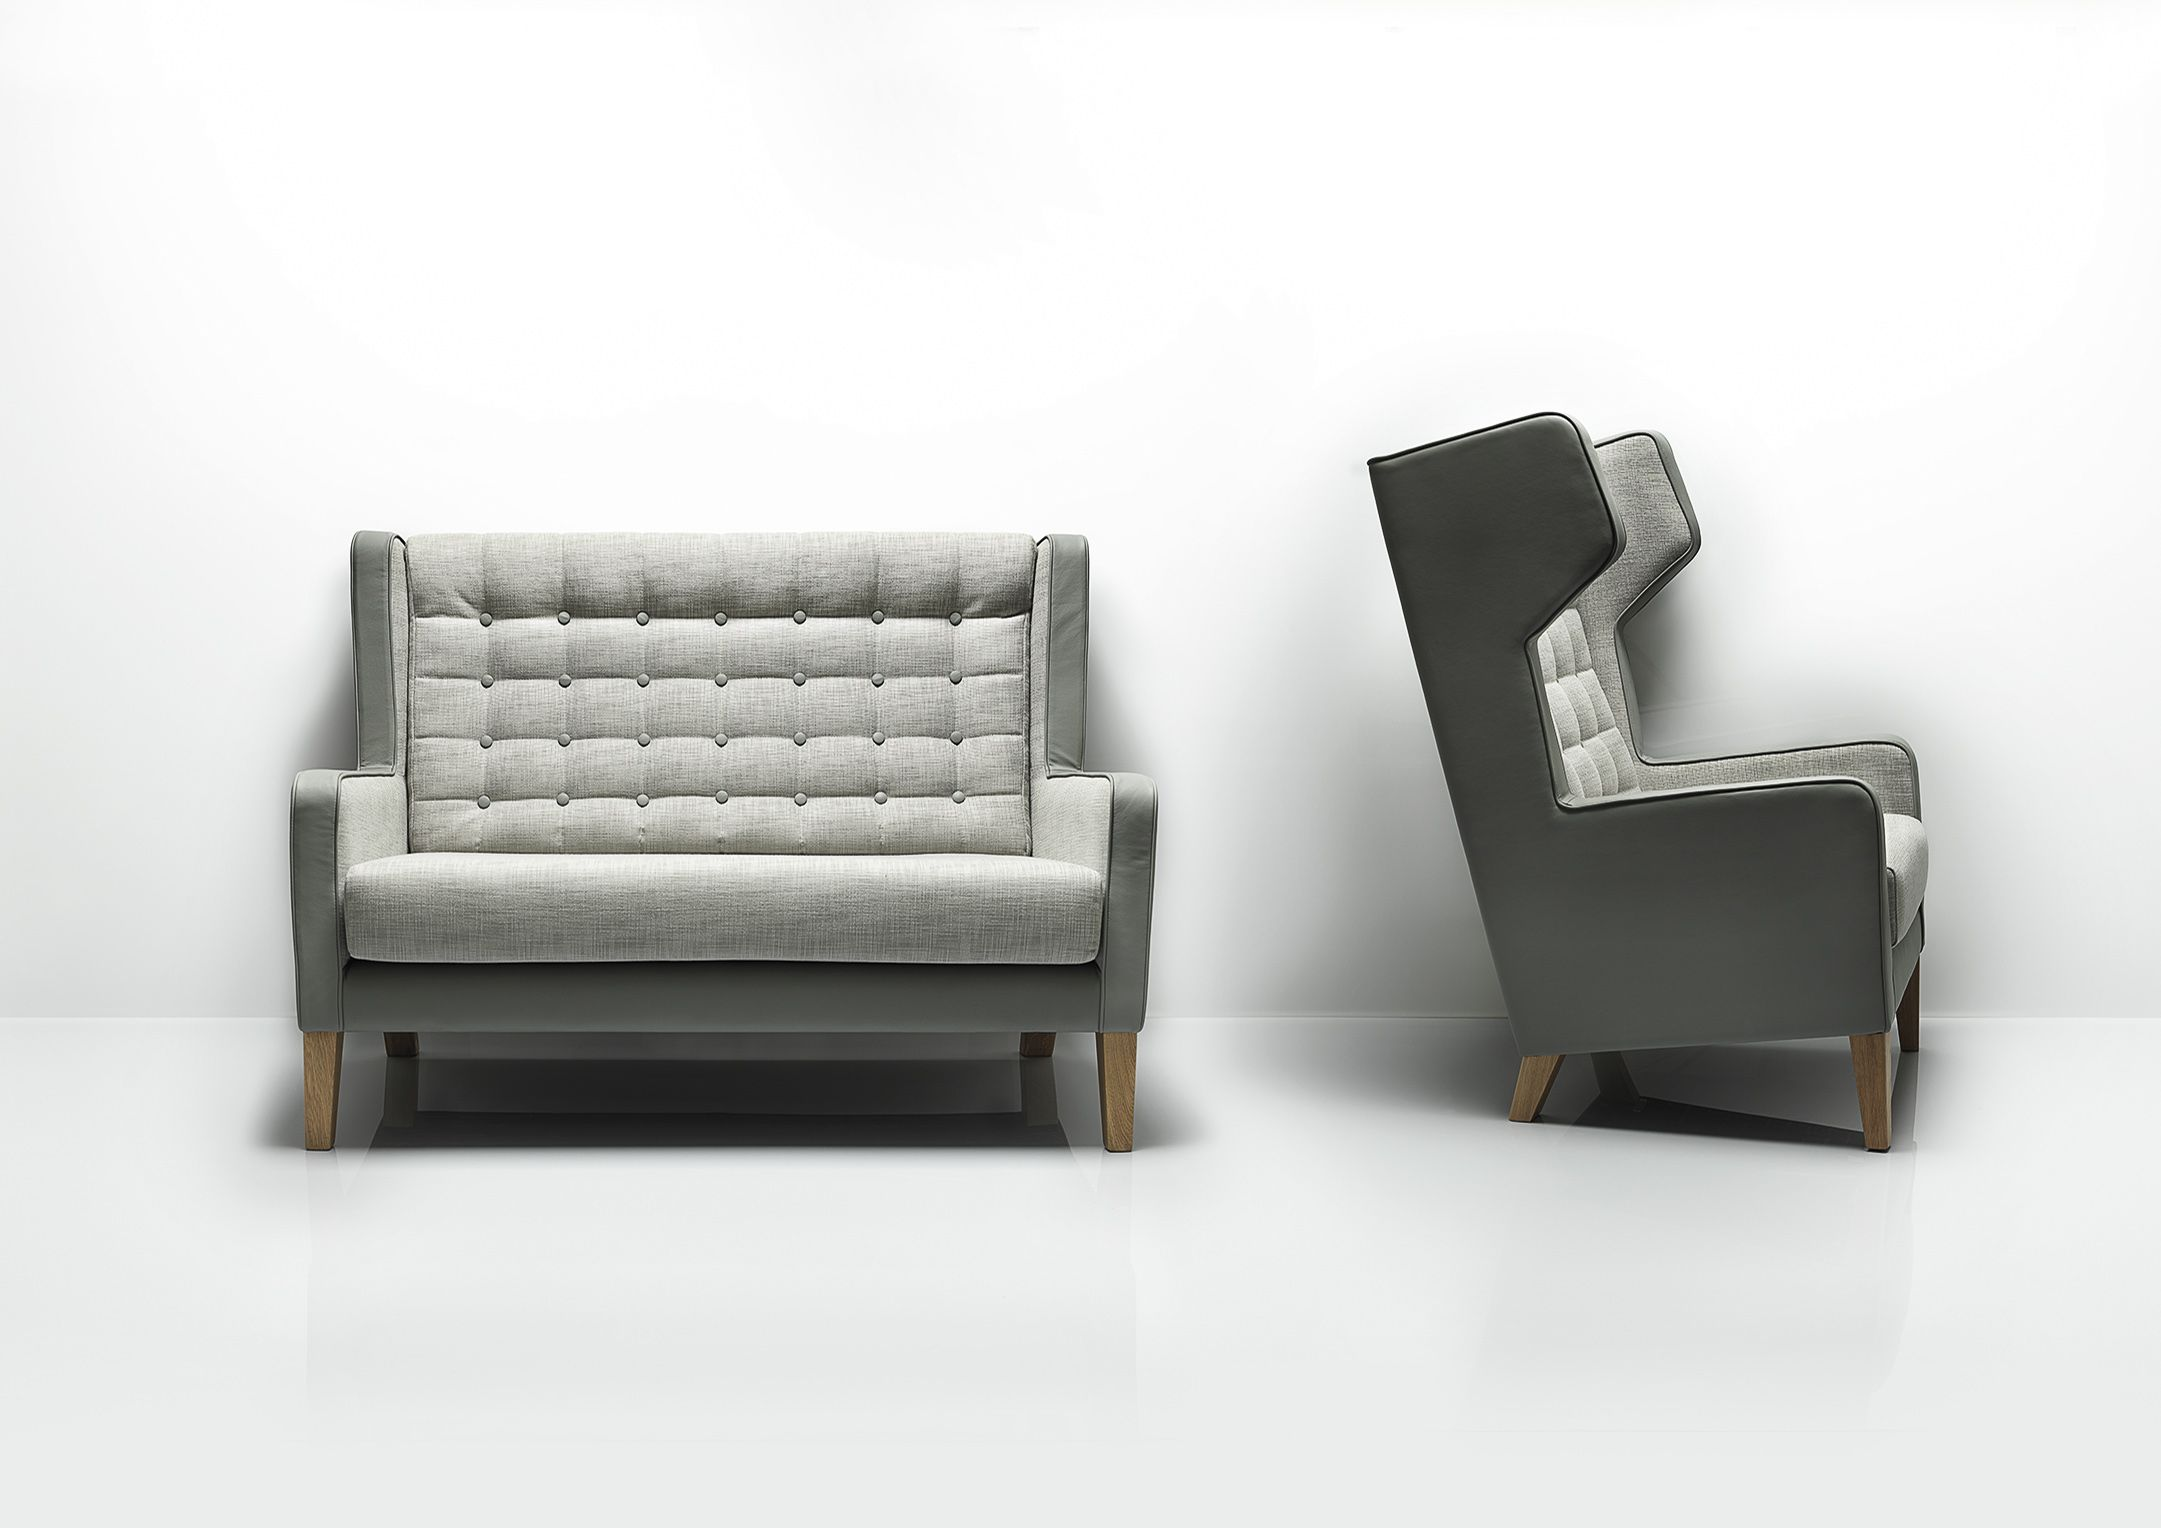 Grainger by Allermuir: Designed to invite private discussion and quiet contemplation, the Grainger collection encompasses a range of luxurious high and low back winged chairs, a two-seater sofa and complementary buttoned ottomans. Grainger's versatile style is a perfect accompaniment to both modern and vintage interiors, whilst the acoustic properties of the seat's wing panels make the piece ideal for breakout areas and executive lounges, or hotel and hospitality environments.